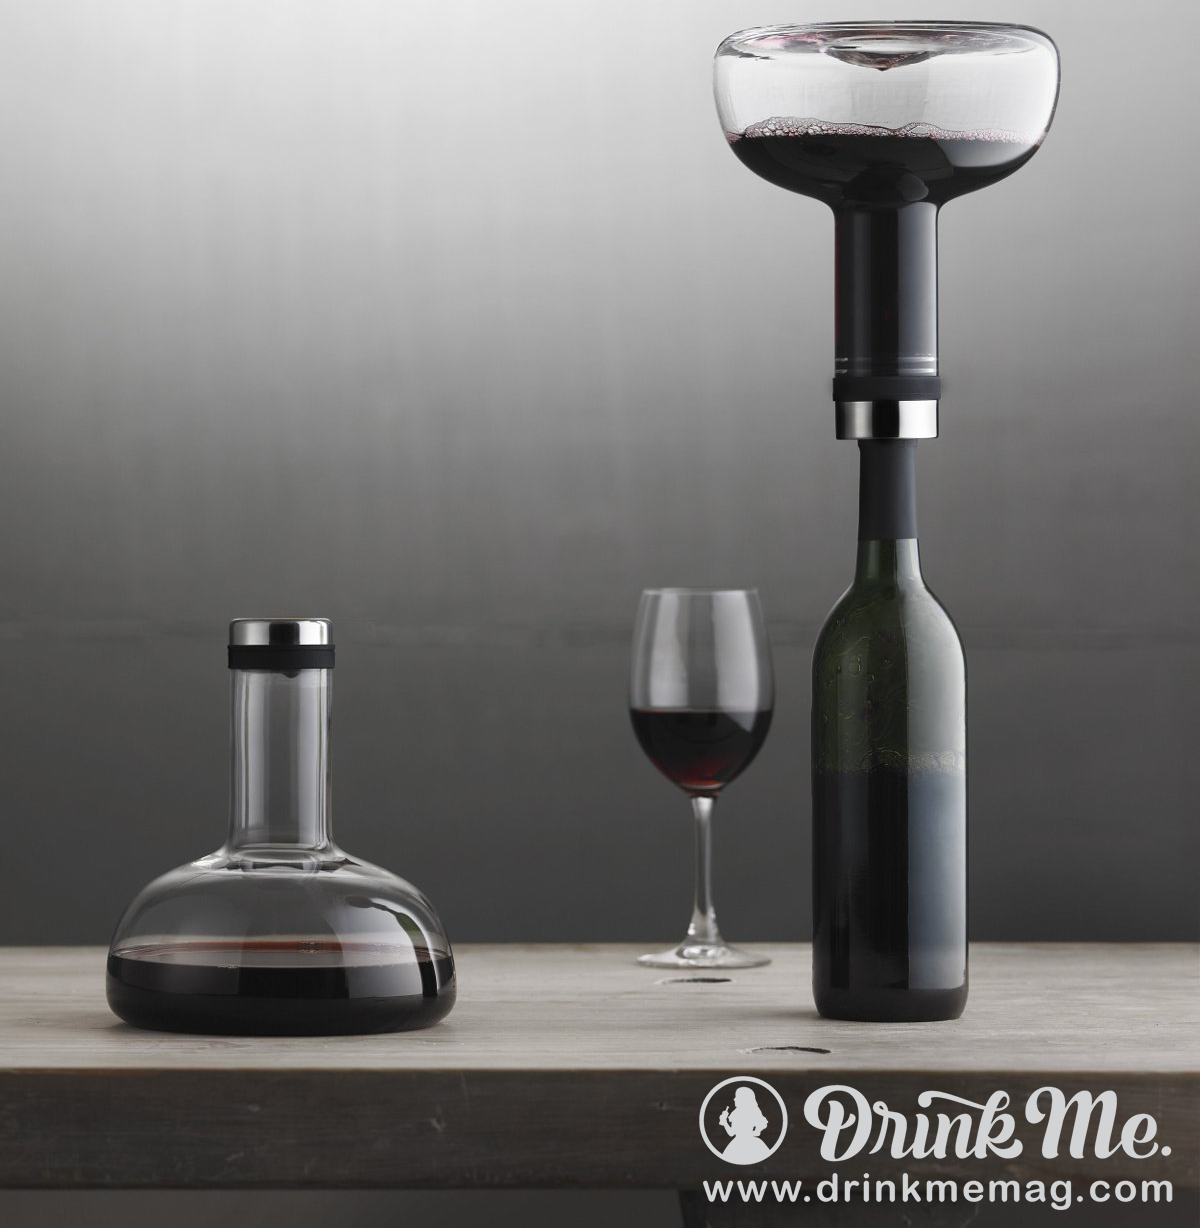 Win A State Of The Art Menu Wine Breather http://www.drinkmemag.com/giveaways/win-a-state-of-the-art-menu-wine-breather/?lucky=3842